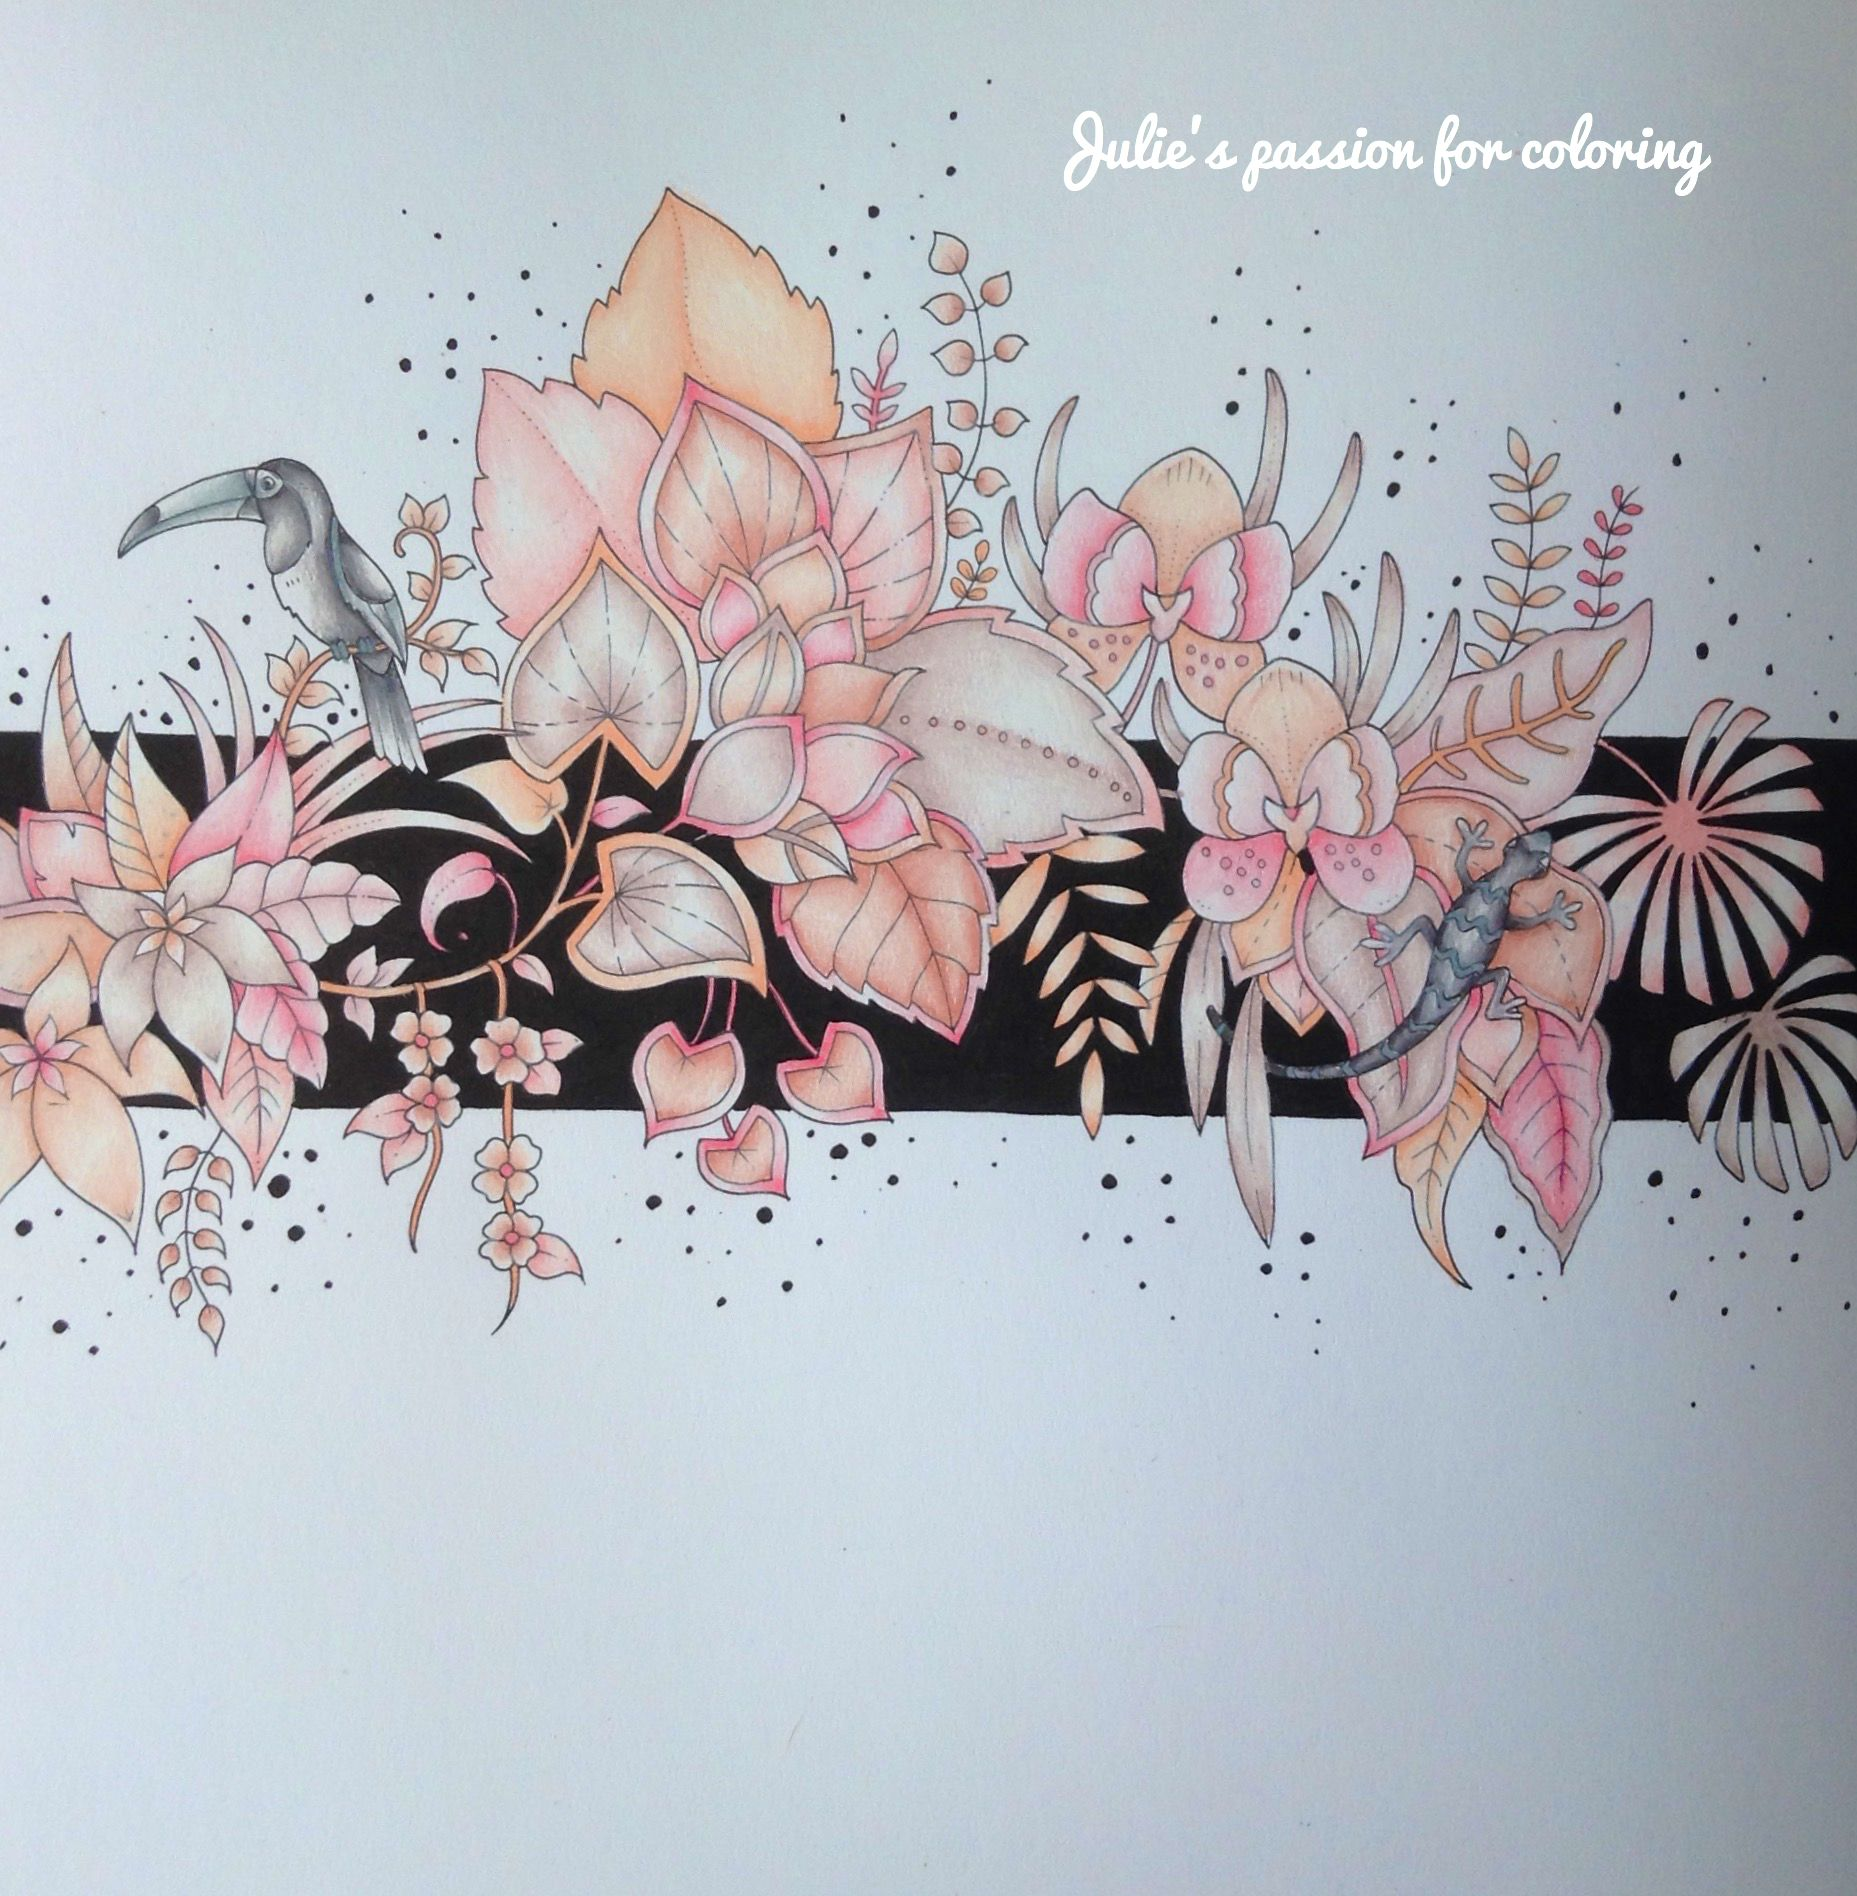 magical jungle by johanna basford colored by julie u0027s passion for